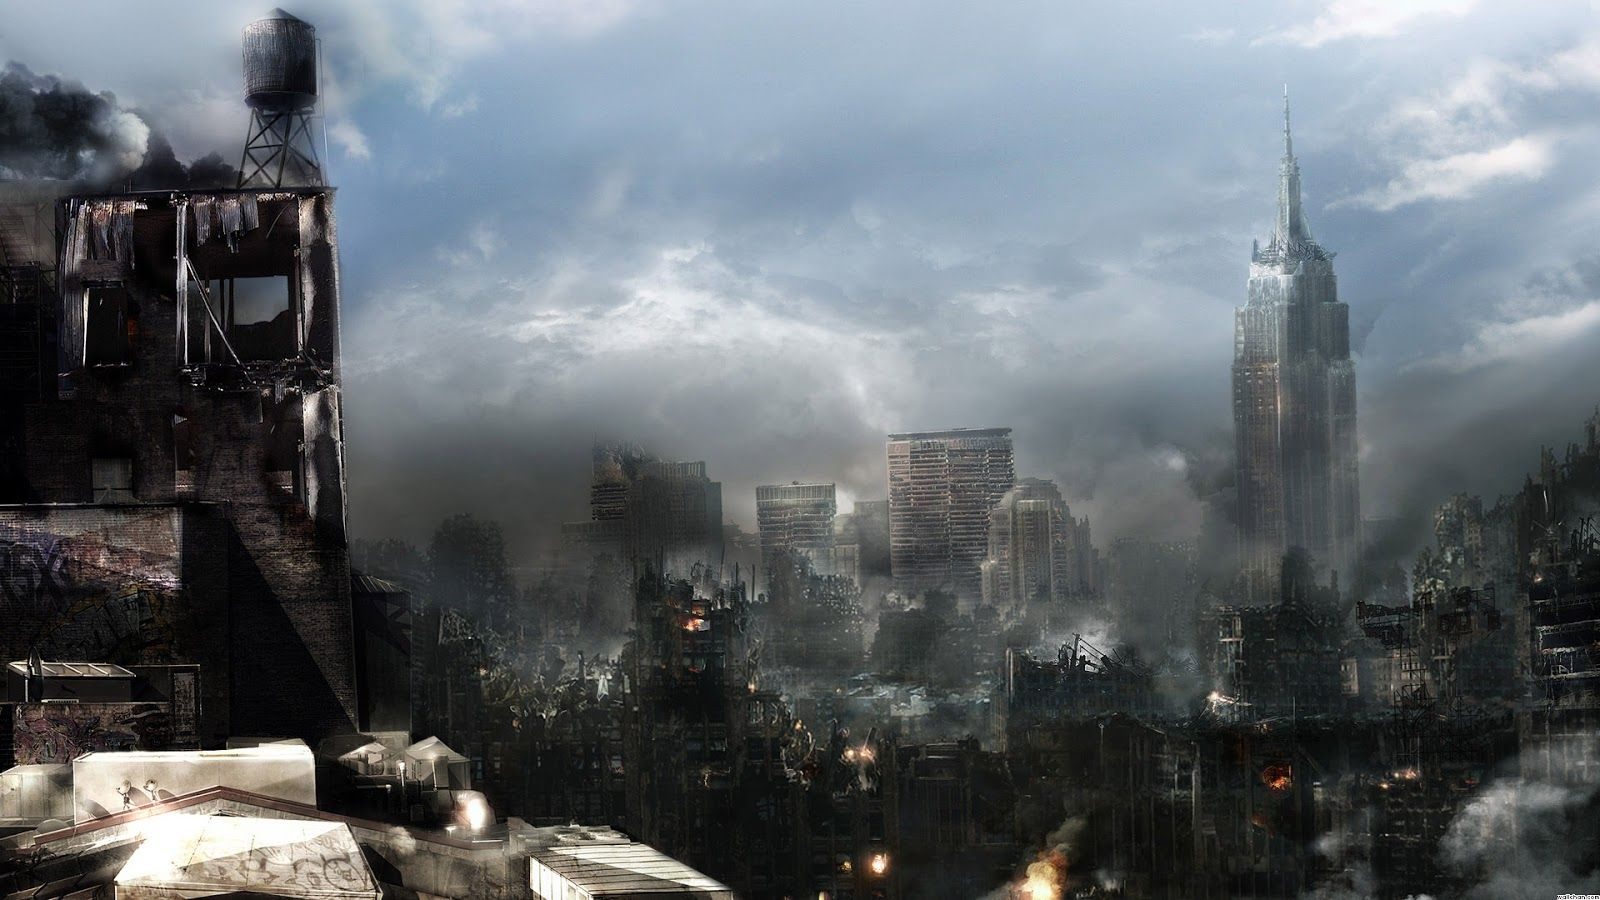 Ethereal Pages Dystopia The Fictional Society Built In Destruction World Wallpaper Future Wallpaper Space Fantasy